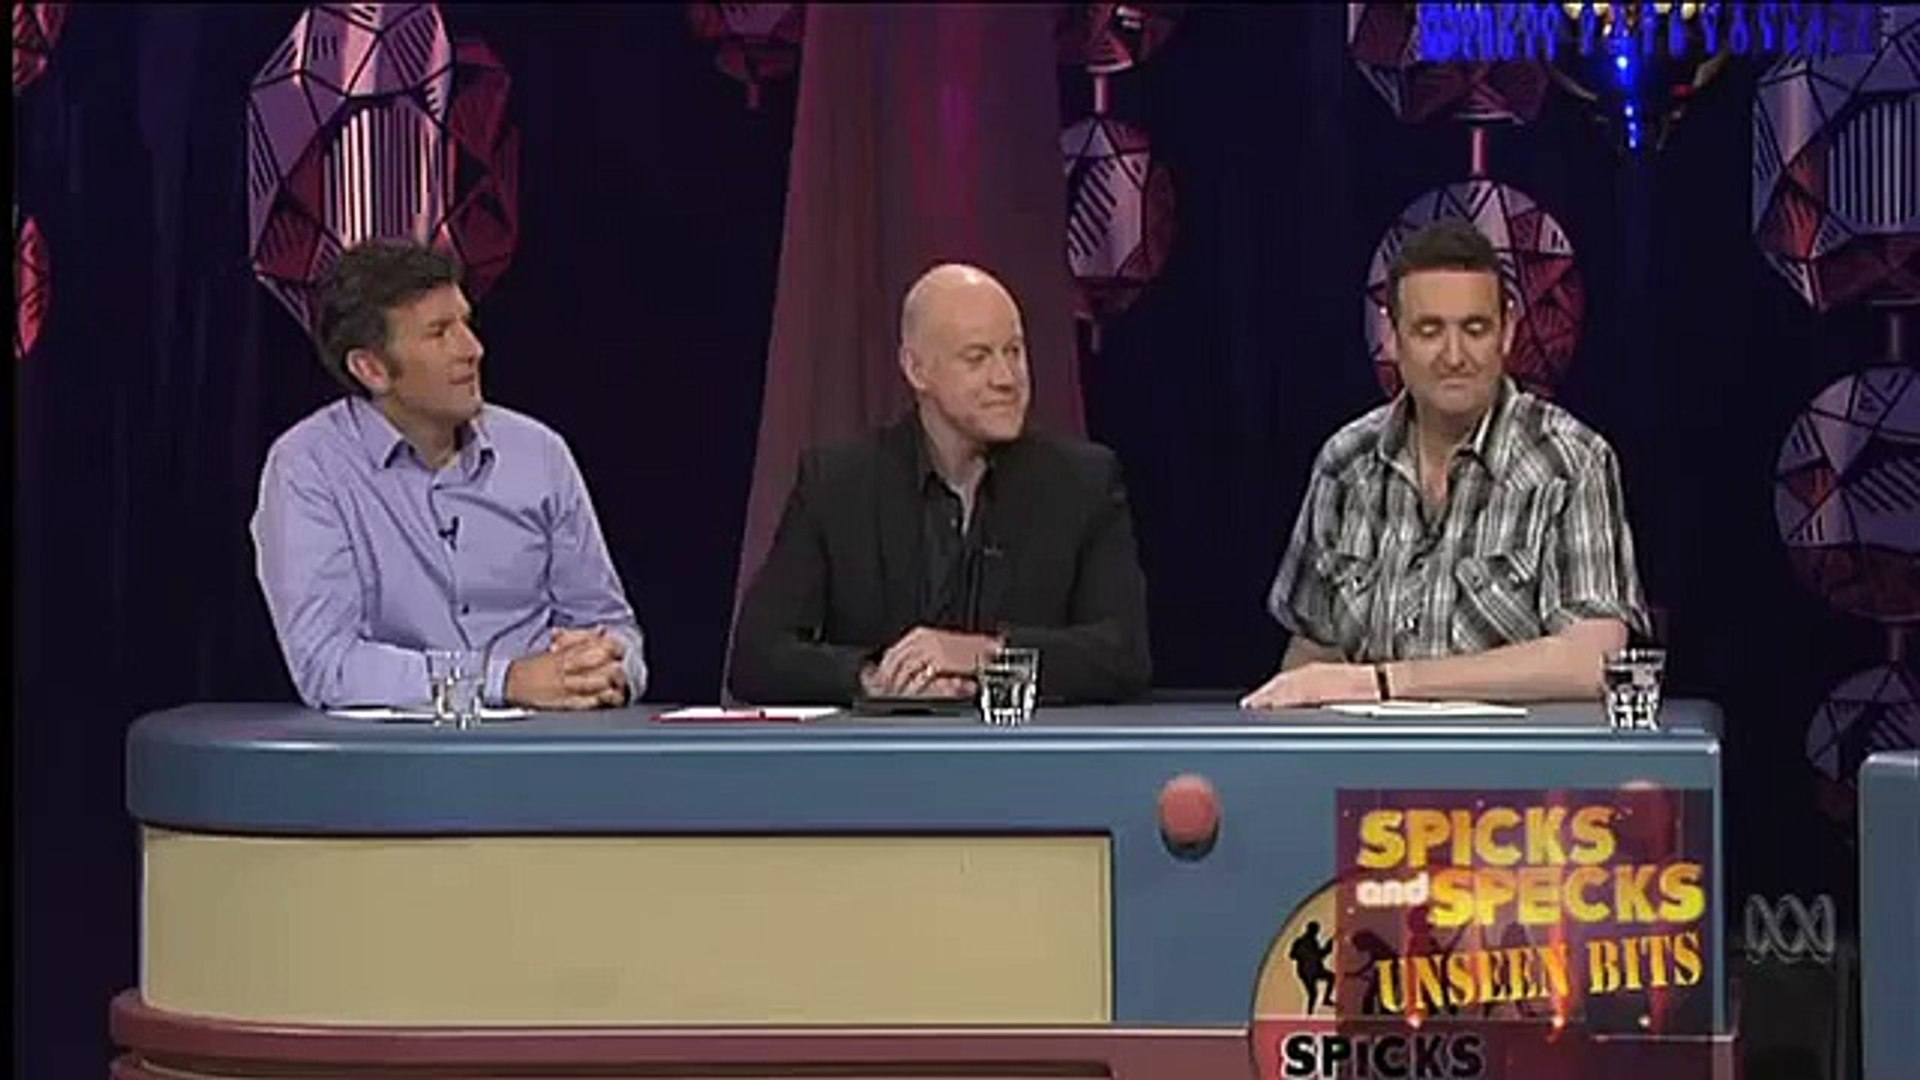 Spicks and Specks | Unseen Bits | Anthony Warlow's Hidden Talents - Ep 3, 2011